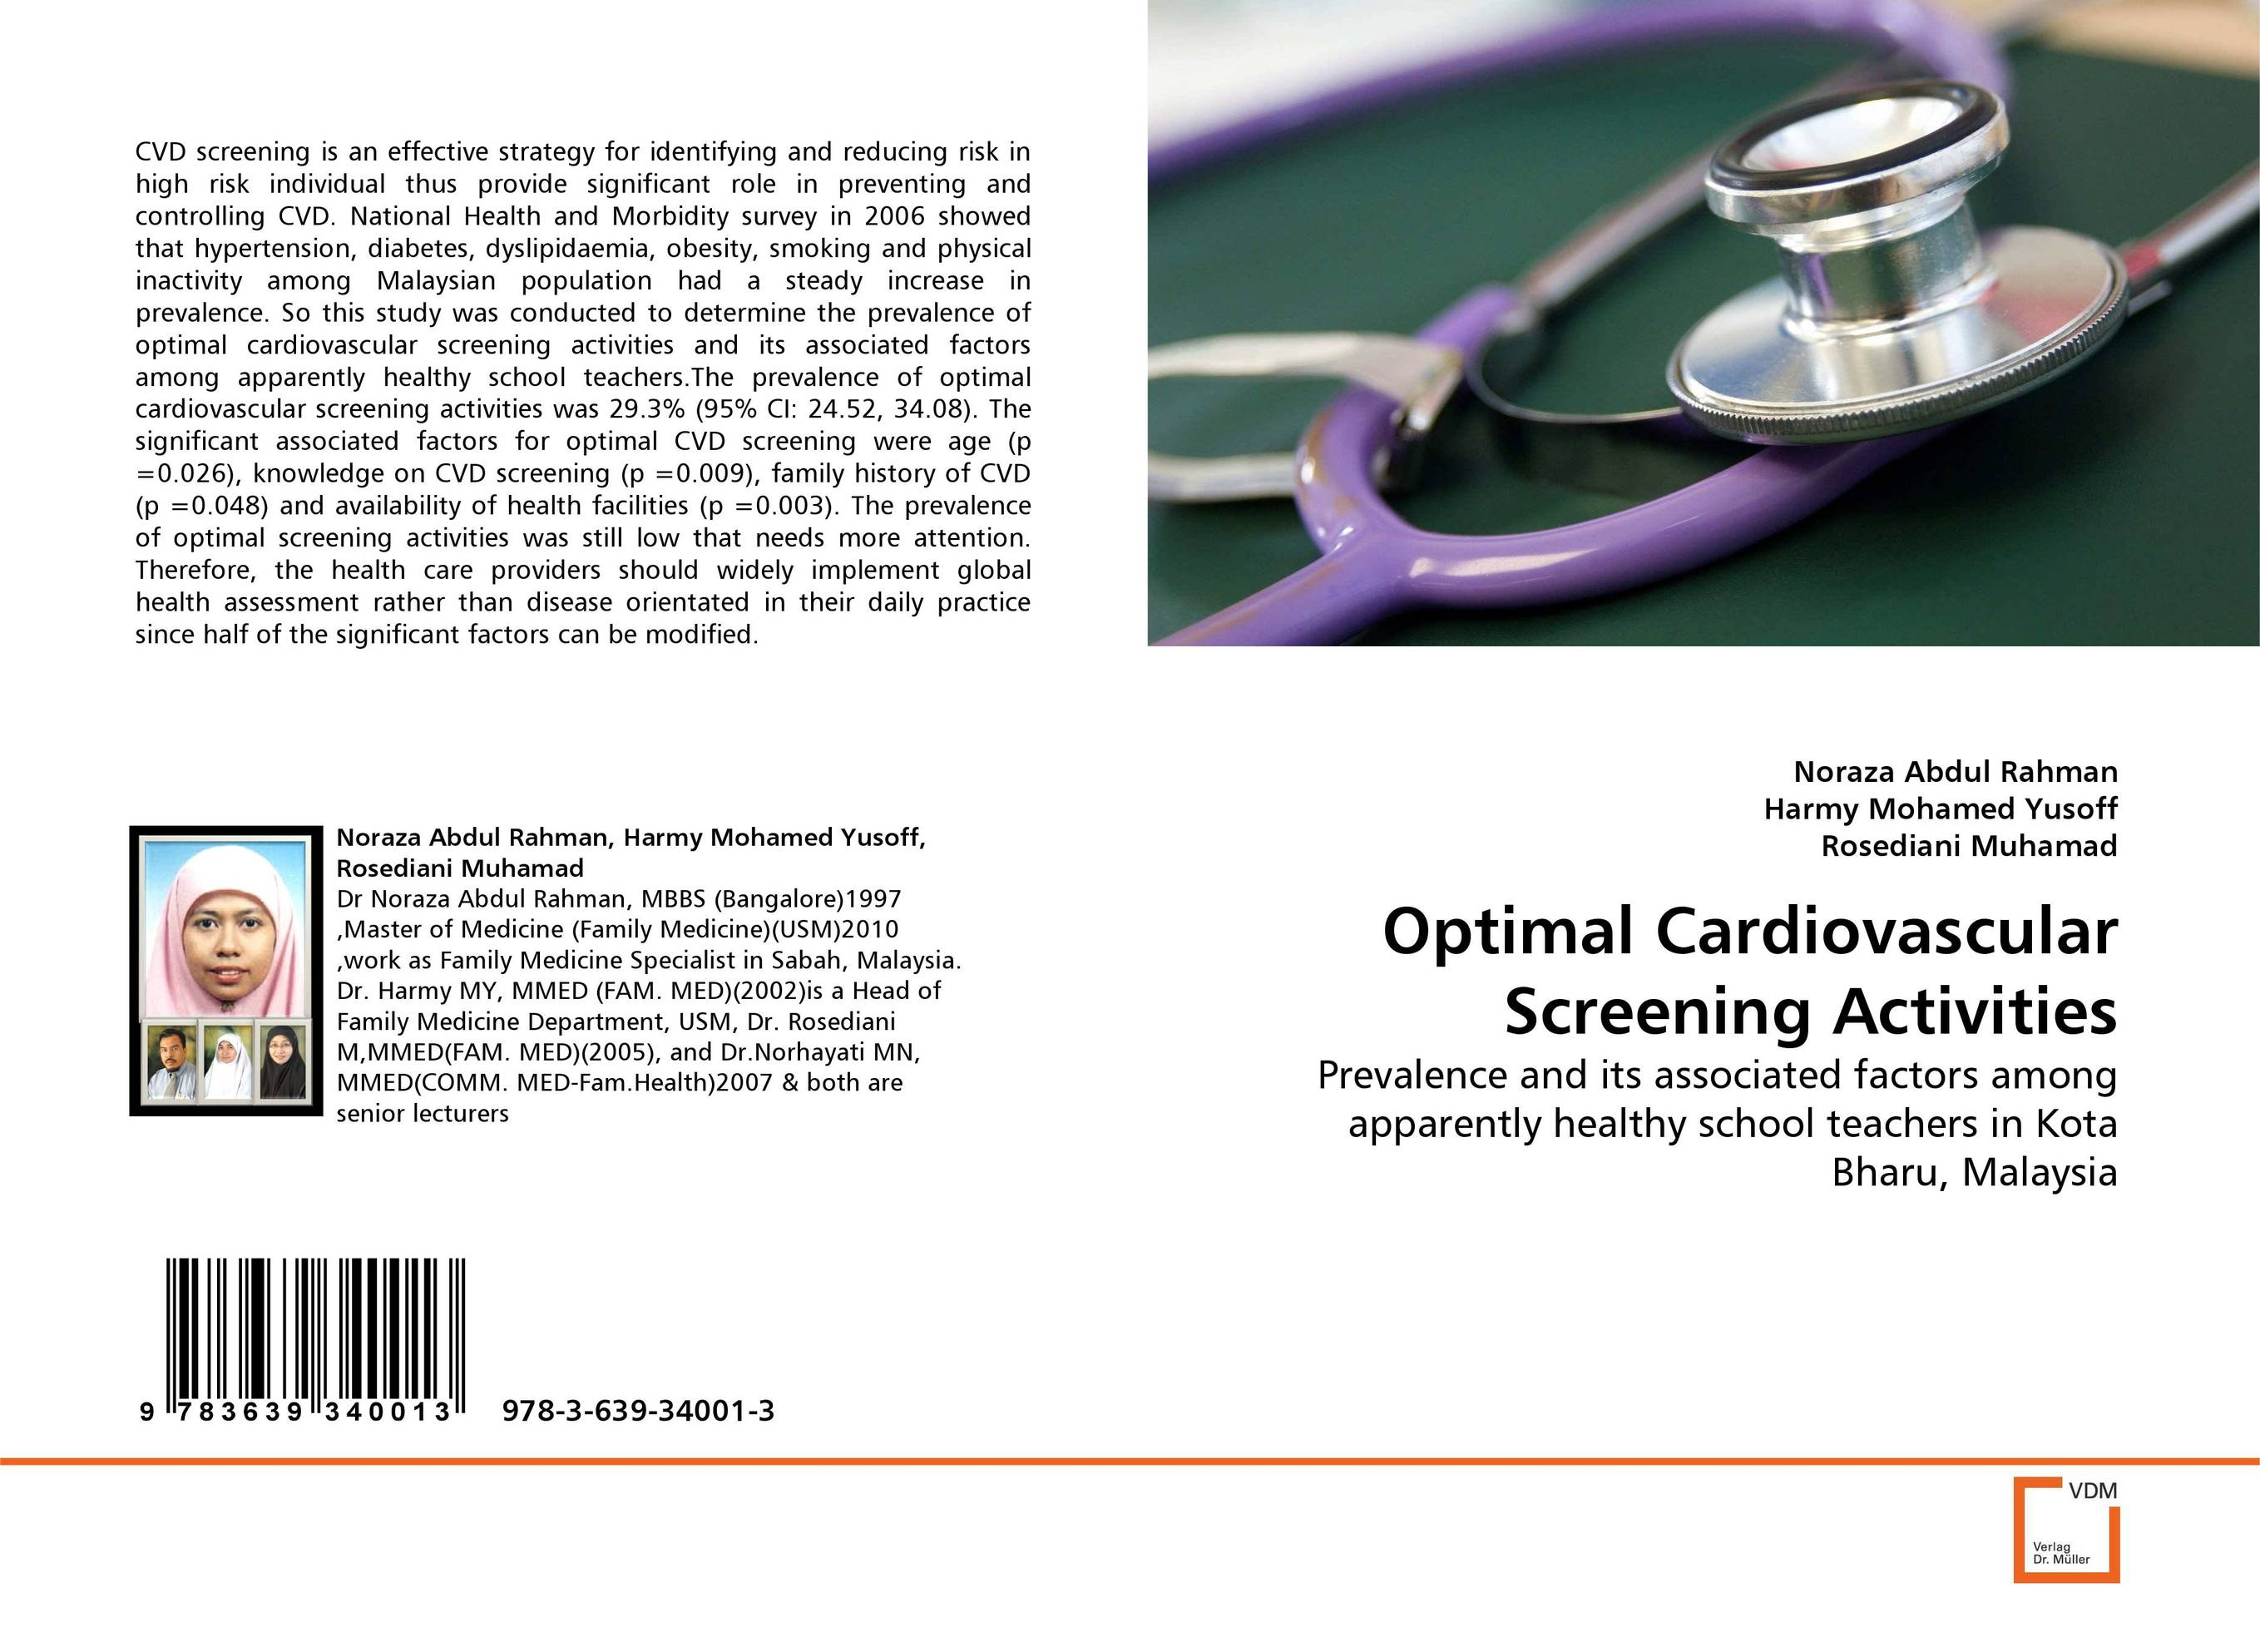 Optimal Cardiovascular Screening Activities prostate screening motivating factors and barriers